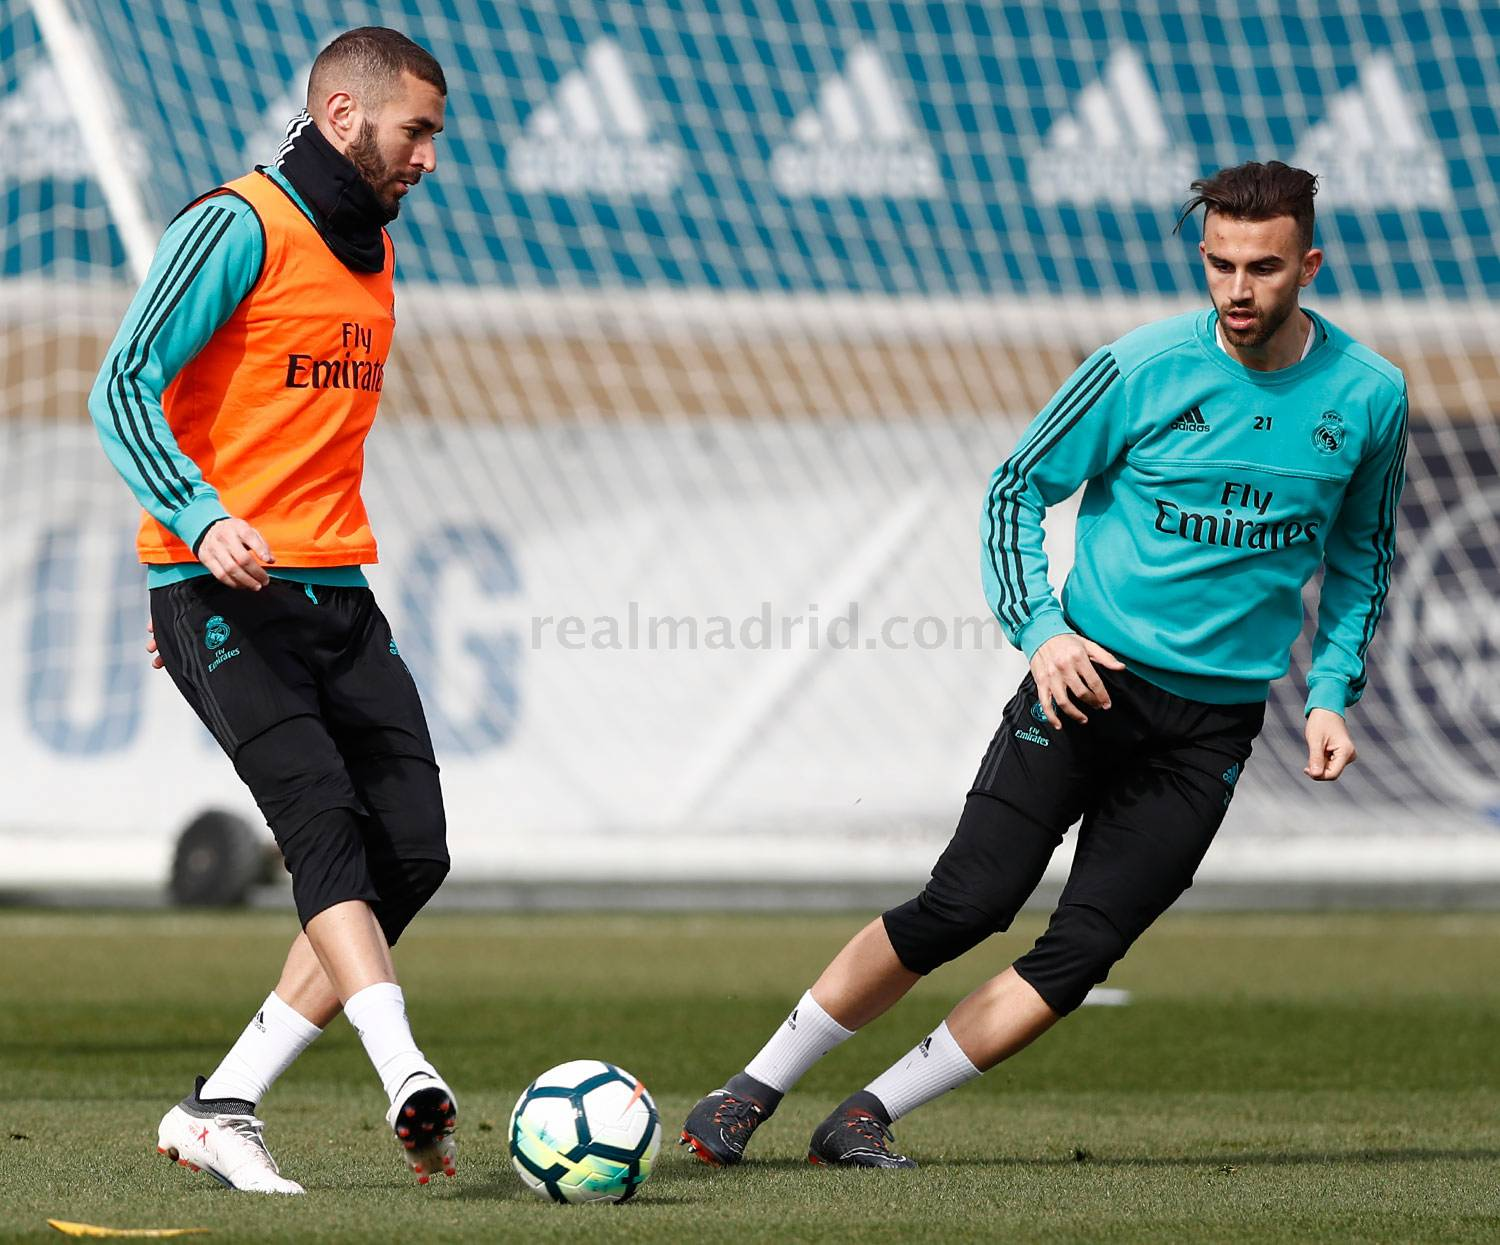 Real Madrid - Entrenamiento del Real Madrid - 19-02-2018